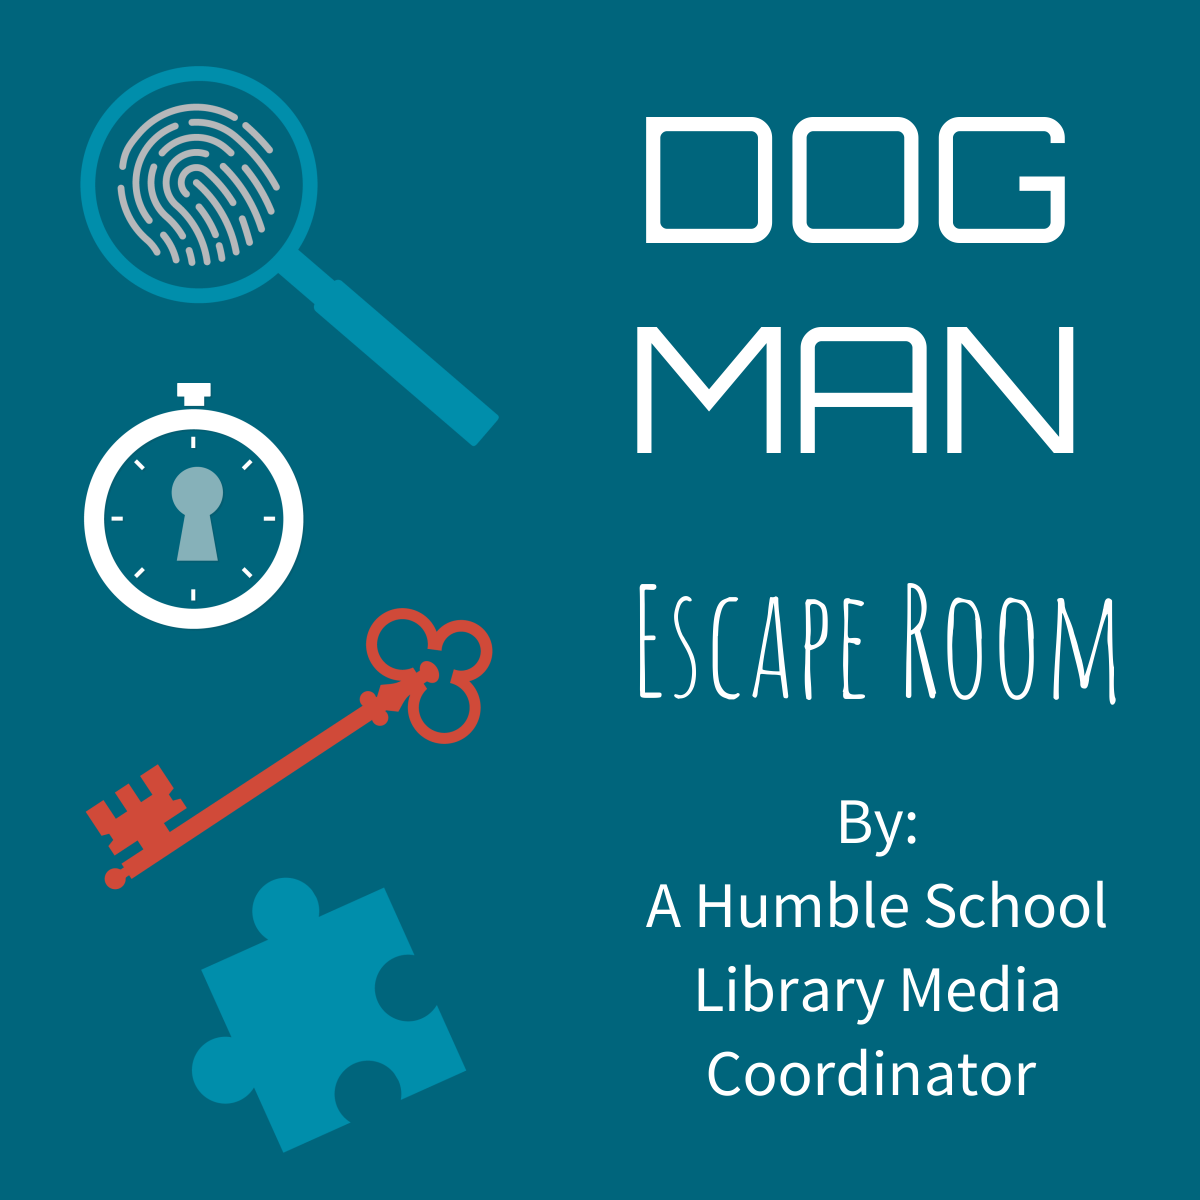 spyglass, fingerprint, clock, keyhole, puzzle piece and text dog man escape room by a humble school